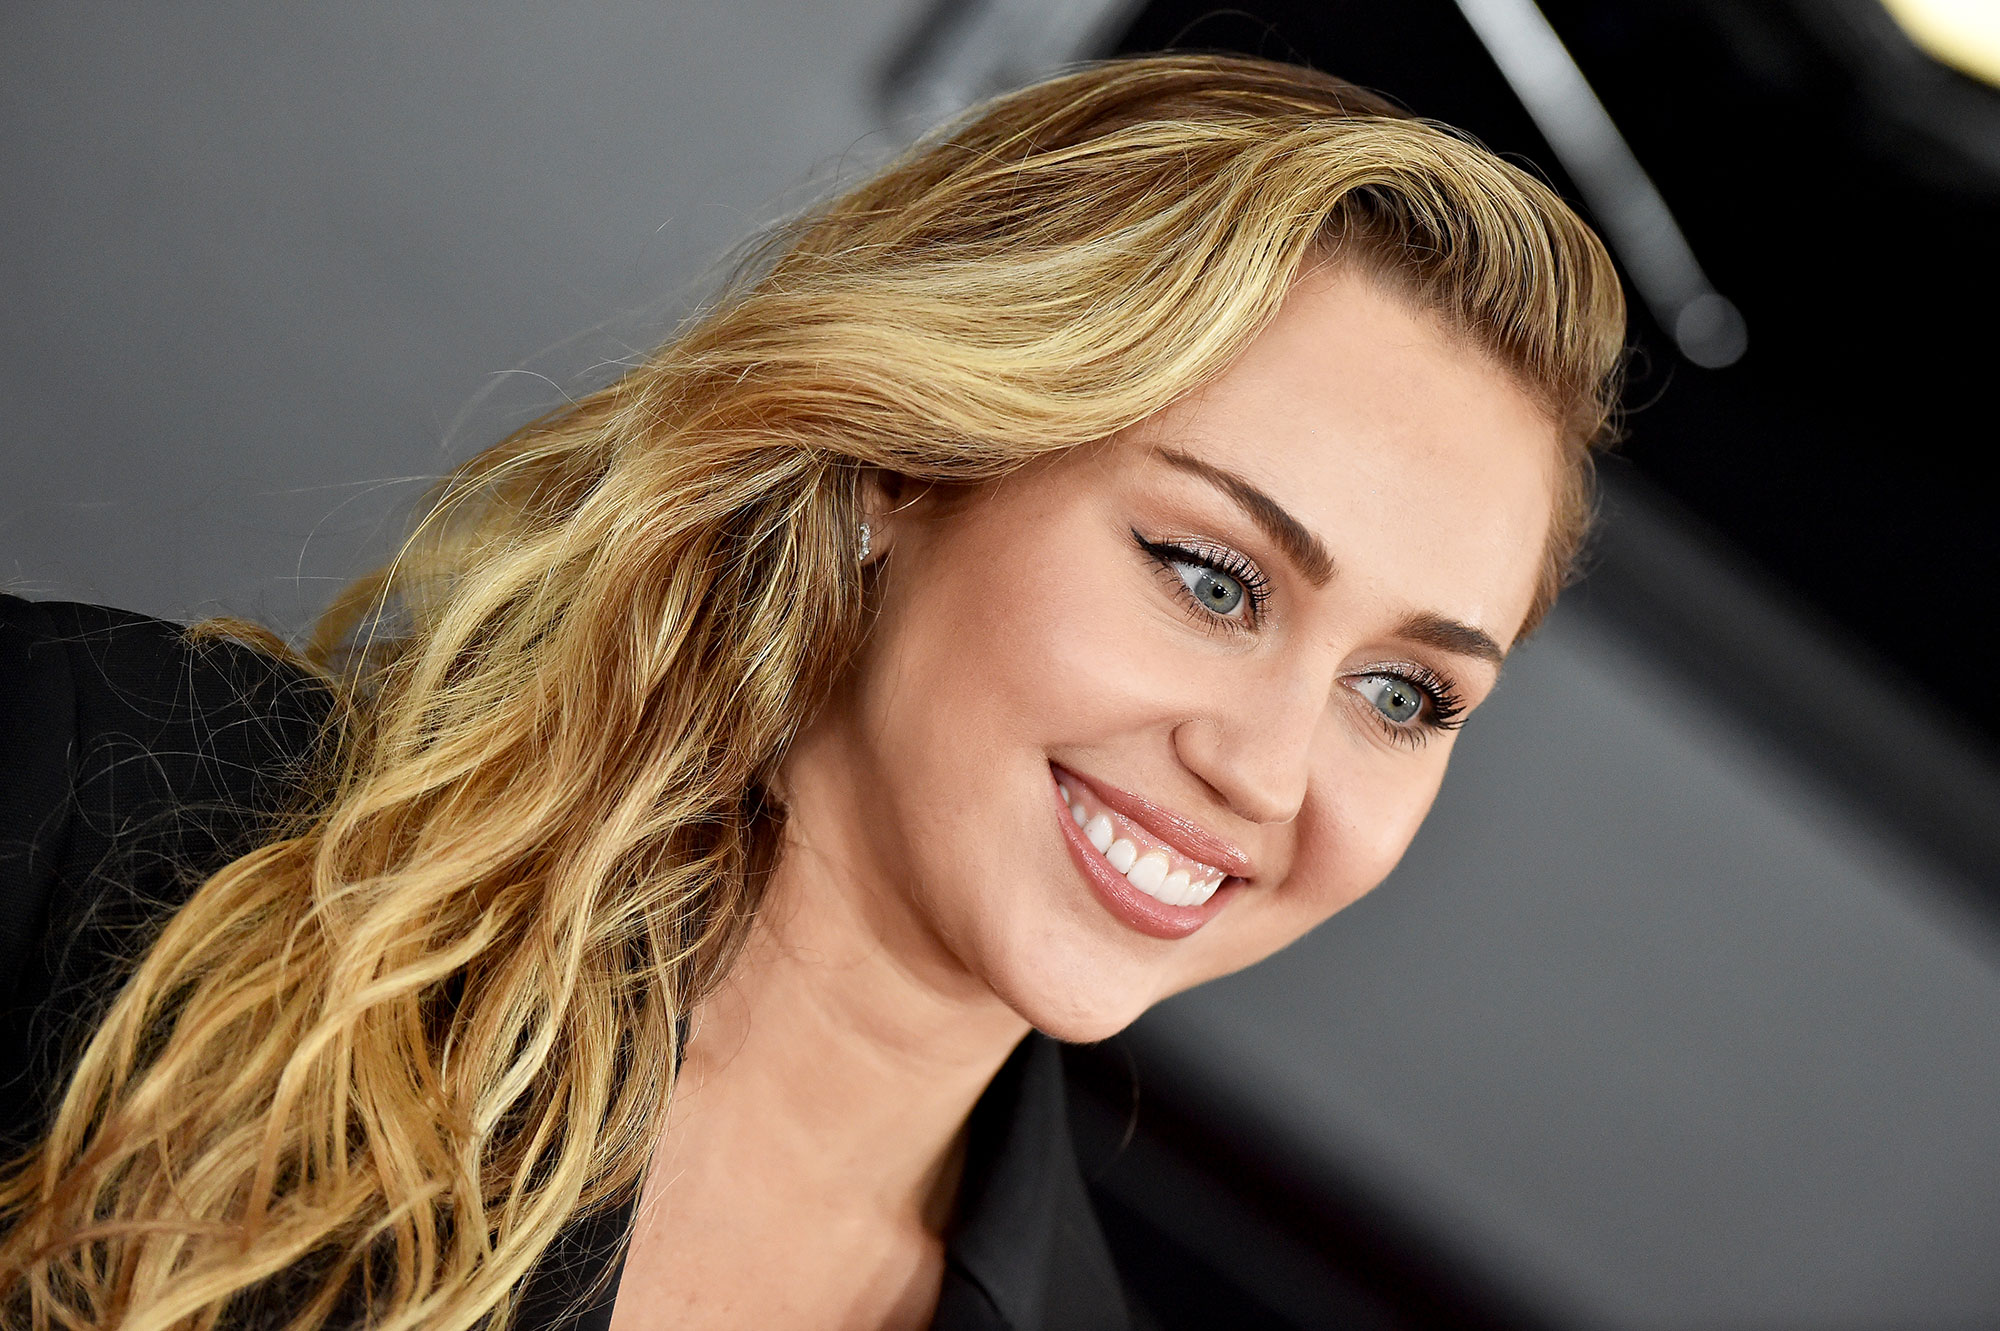 grammys 2019 Miley Cyrus - Meow! For the singer (and newlywed!), makeup pro James Kaliardos painted the daintiest of winged liner to bring out her eyes in a subtle yet sexy way.